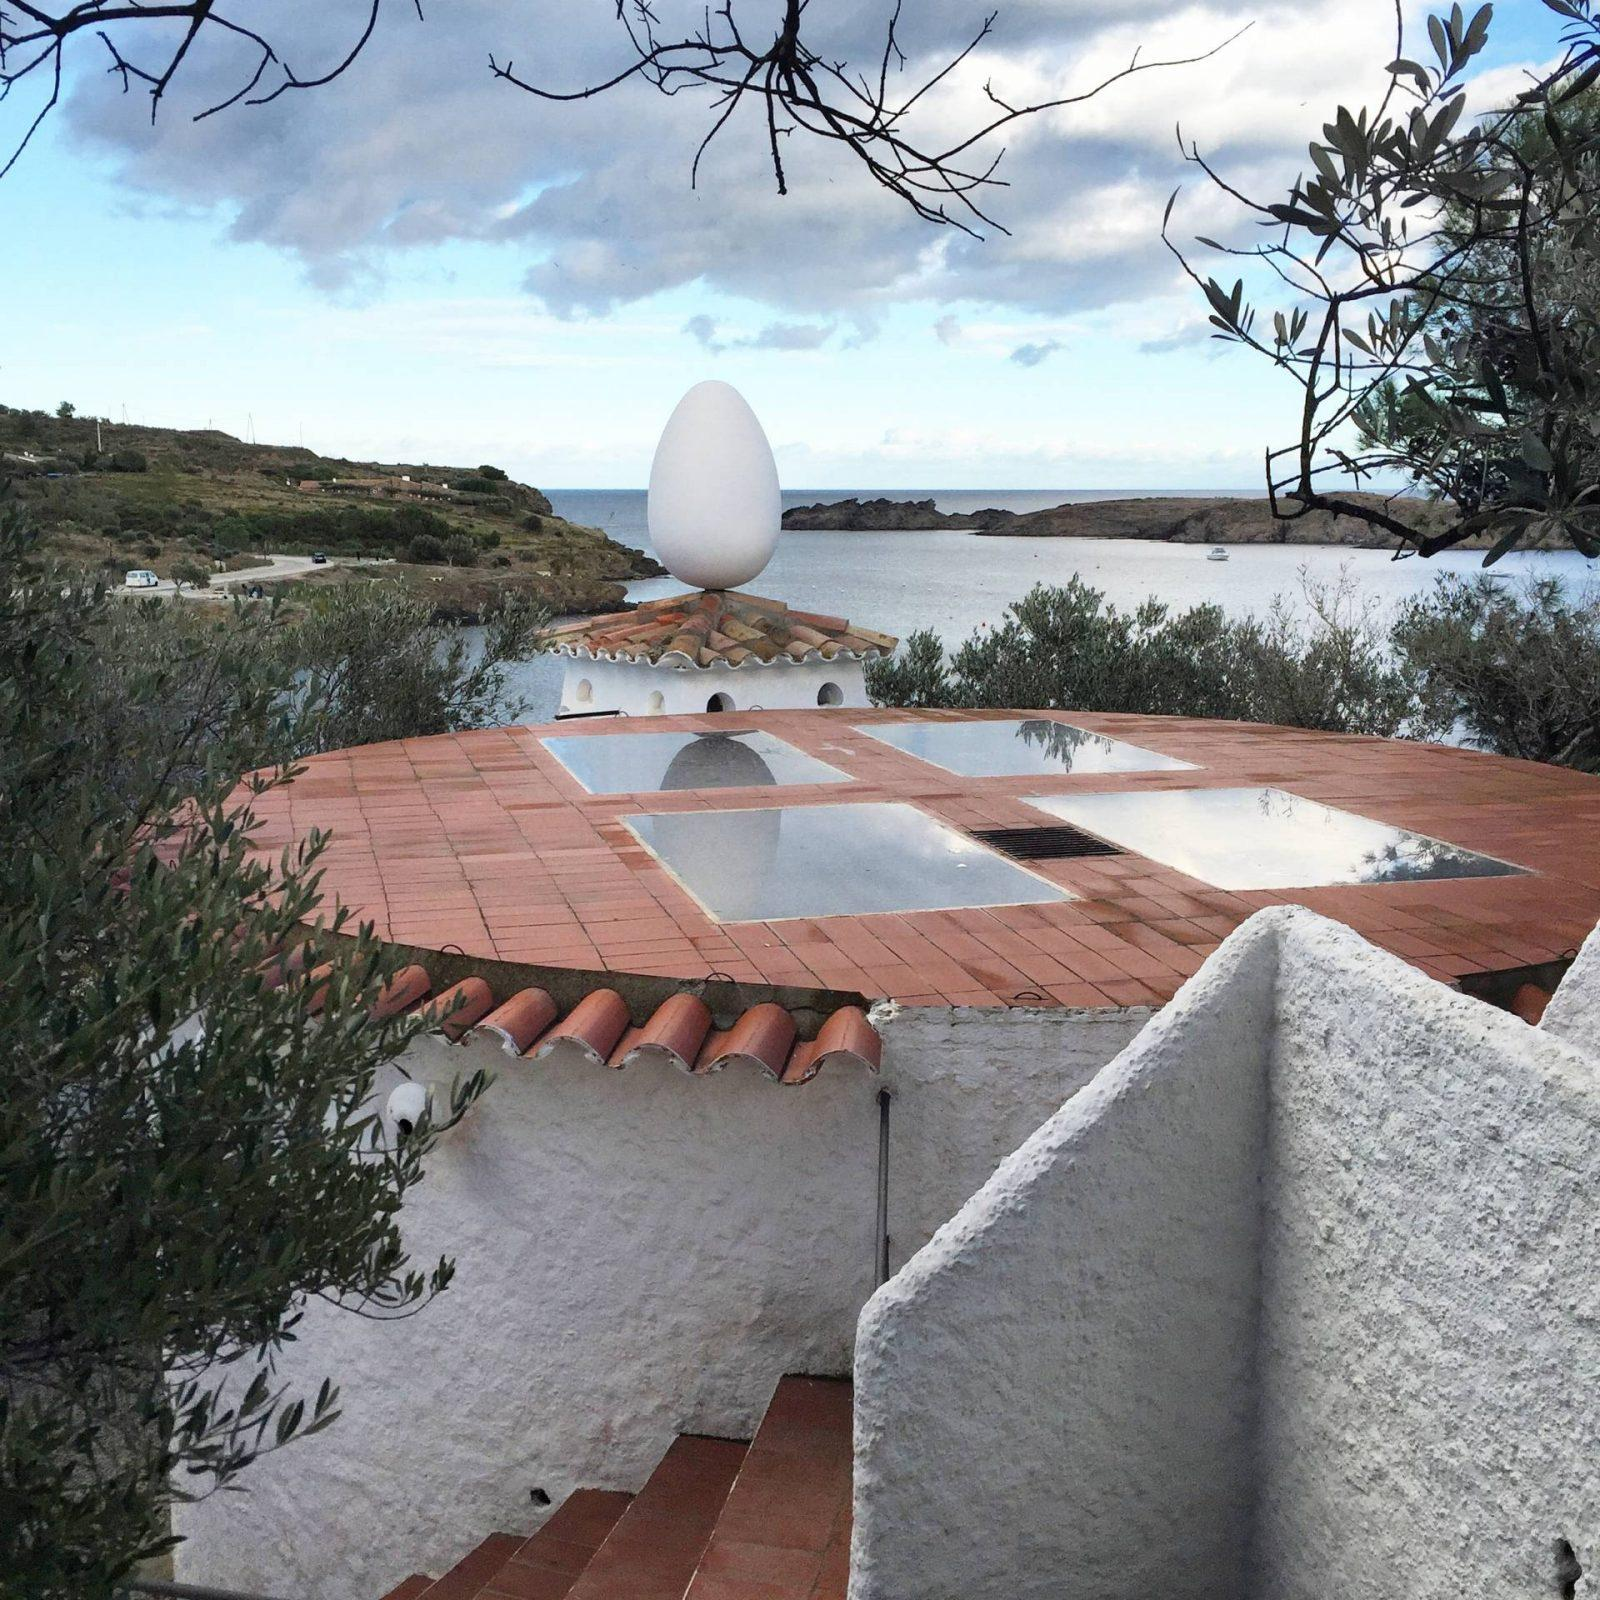 Discover Salvador Dali's Port Lligat Home on a Day Trip to Cadaques, Spain